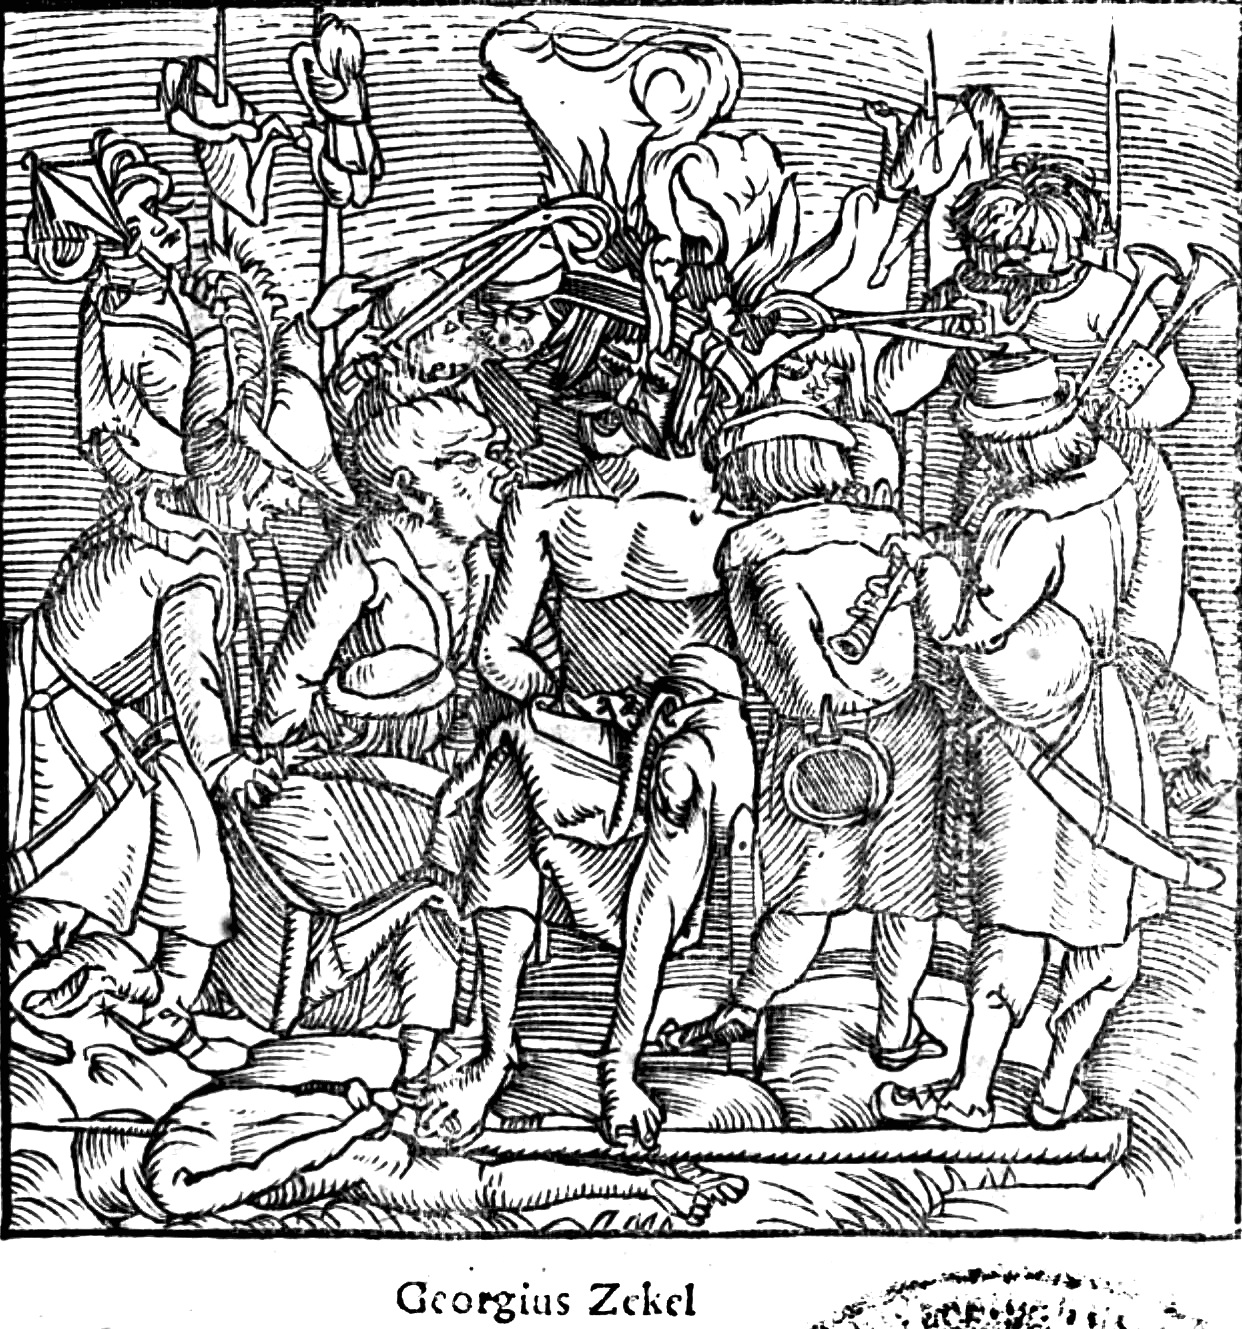 Contemporary woodcut depicting the horrific execution of György Dózsa, the leader of a Hungarian peasant revolt.